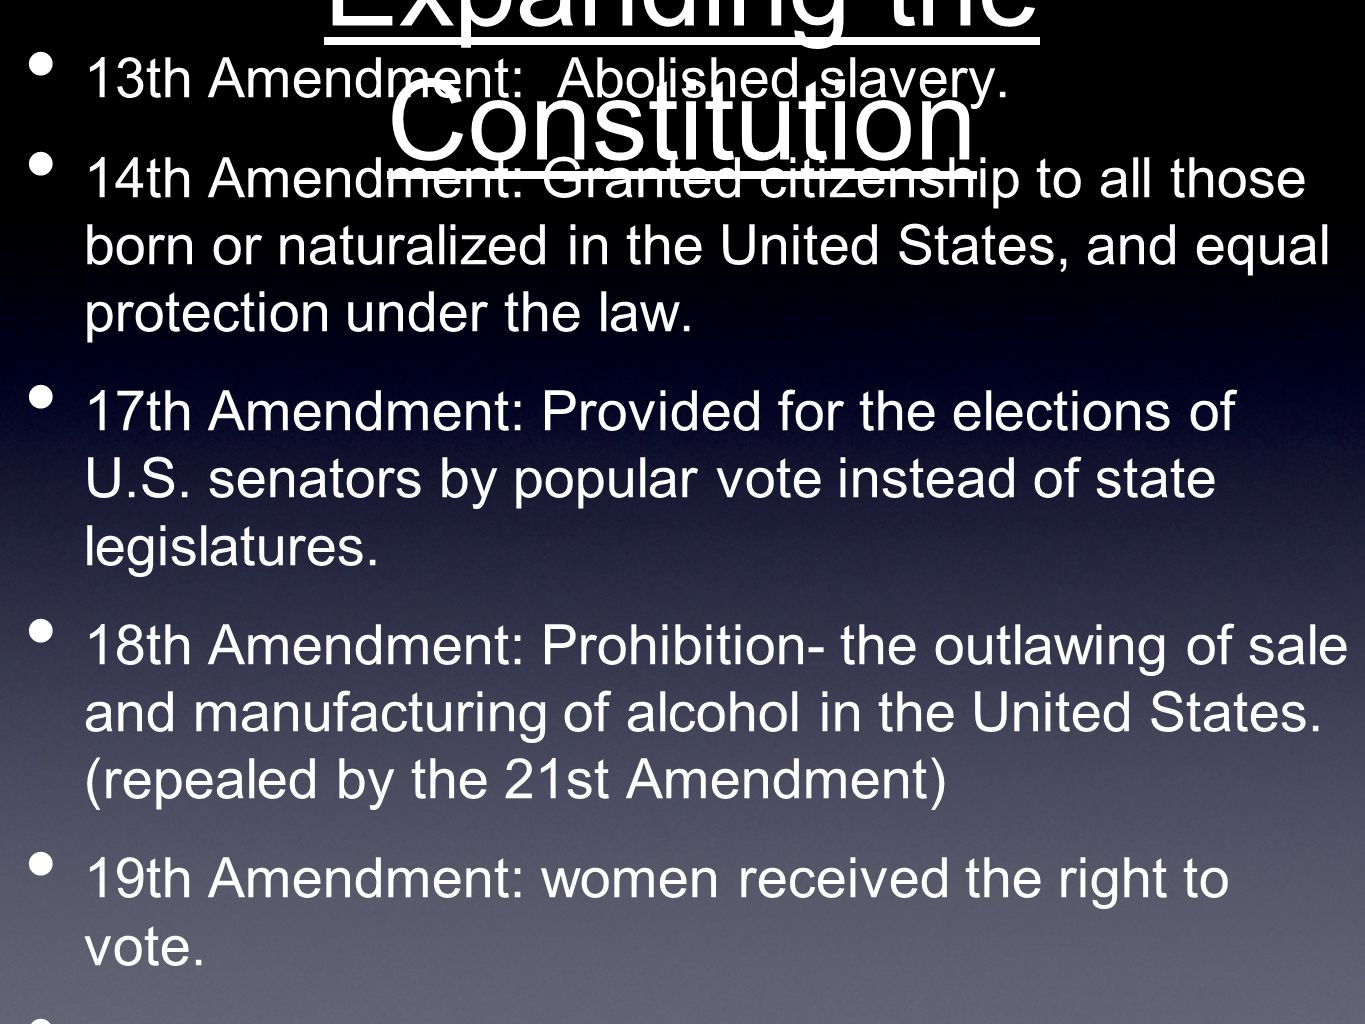 Expanding the Constitution 13th Amendment: Abolished slavery. 14th Amendment: Granted citizenship to all those born or naturalized in the United State